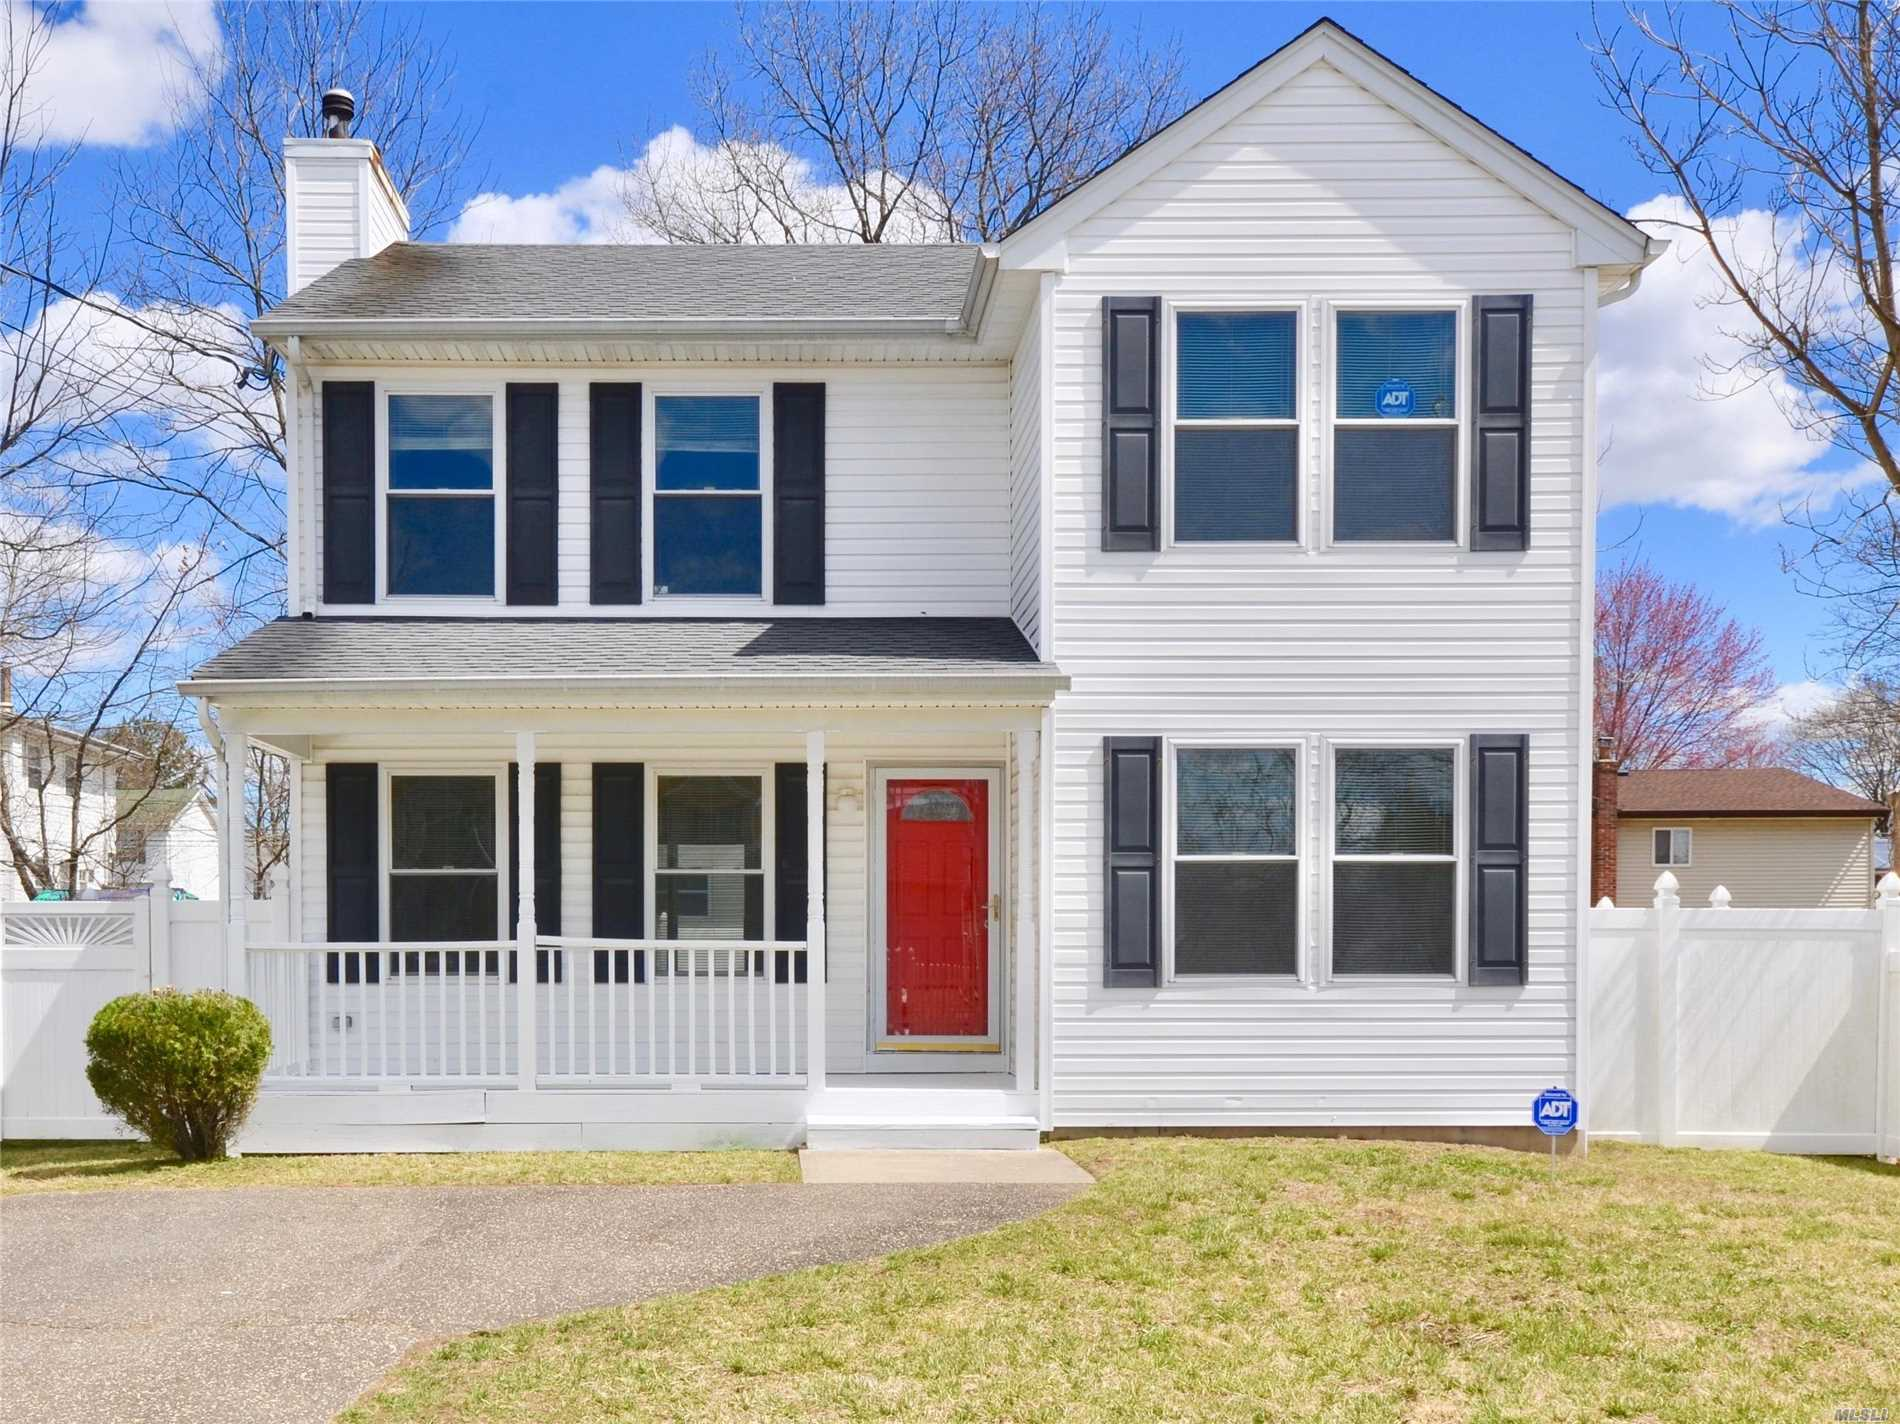 Mint 3 Bedroom 2 Full Bath Colonial Clean Well Maintained Home on a Quiet Residential Block With Flat Private PVC Fenced Property. Main Level Has Gorgeous Hardwood Floors. Upper Level Master Suite Includes a Vaulted Ceiling, Walk-In Closets and A Master Bath. Must See